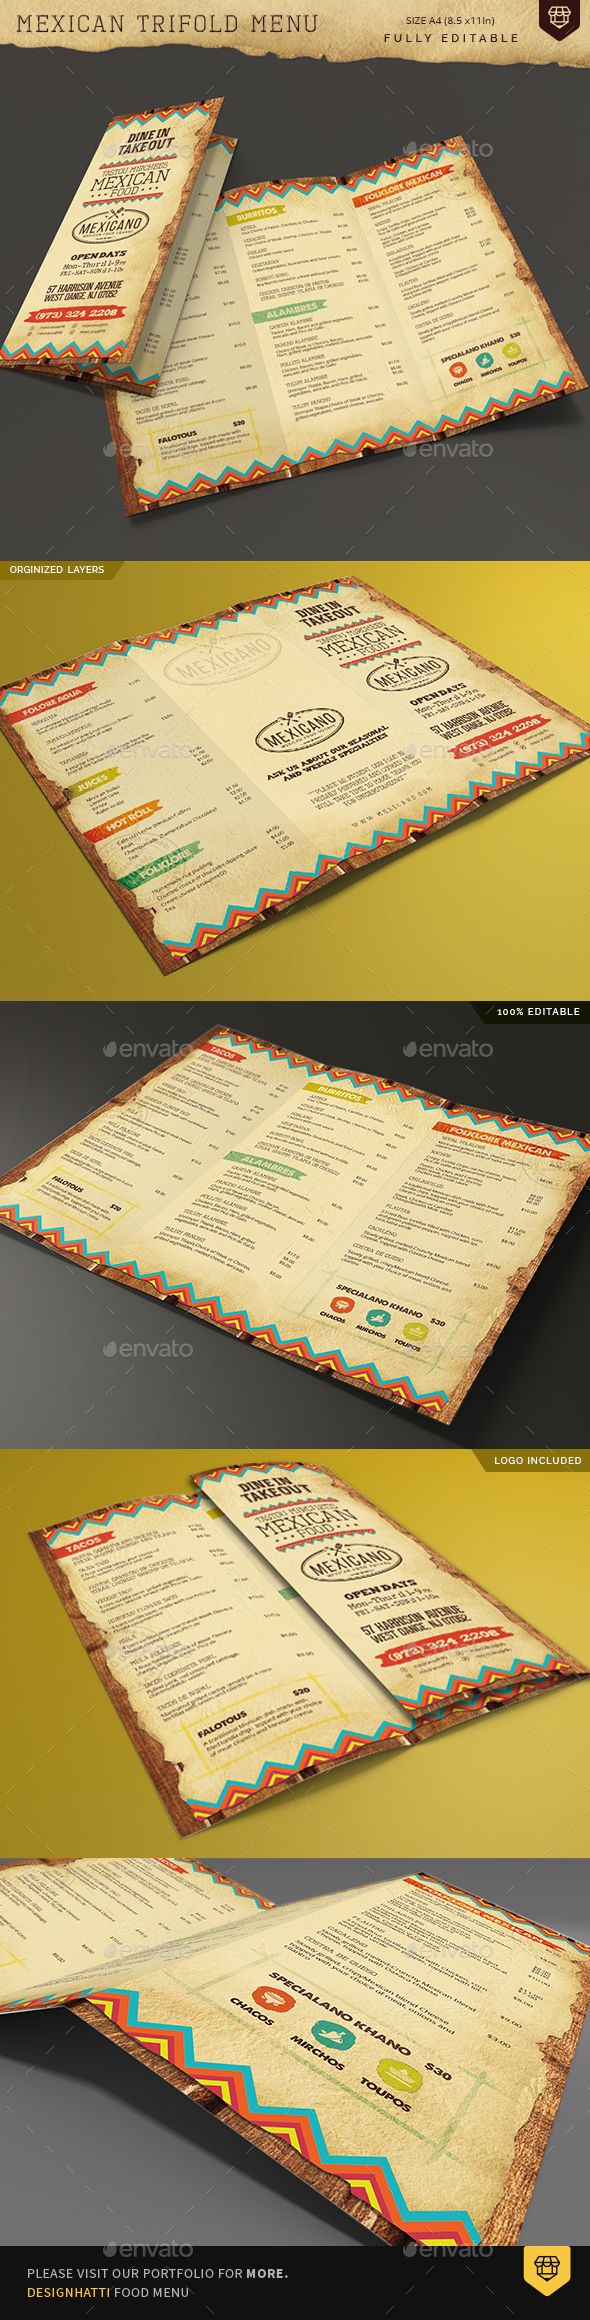 455 best trifold restaurant menu template images on pinterest trifold mexican food menu pronofoot35fo Choice Image